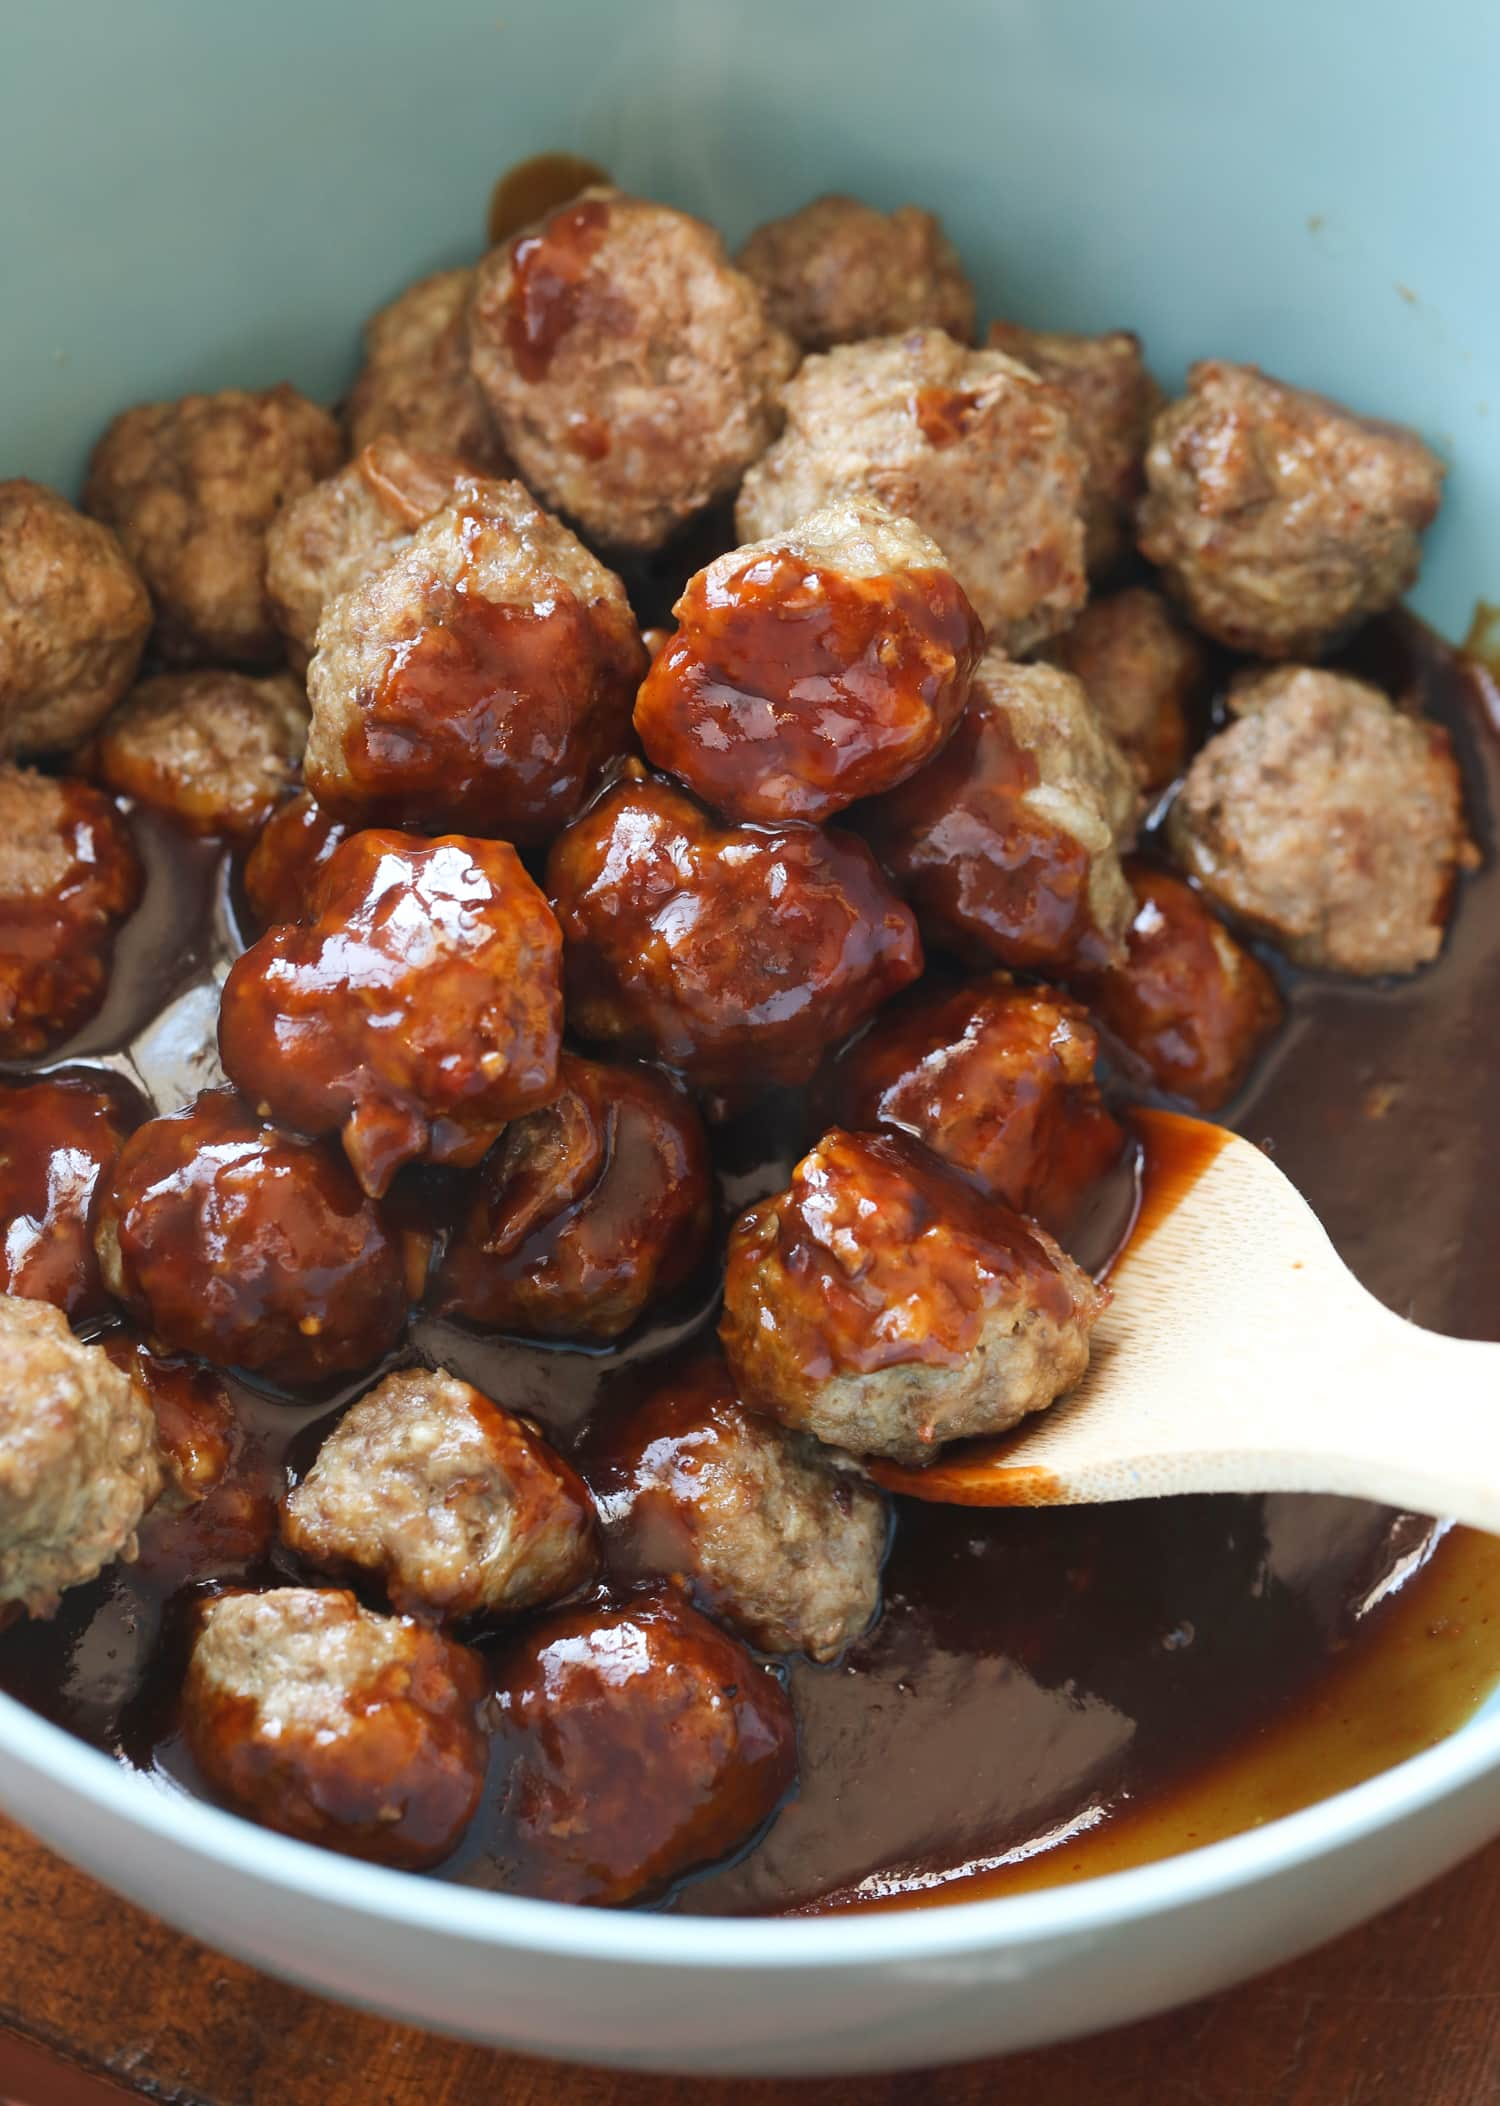 Cooked meatballs in homemade sesame sauce.